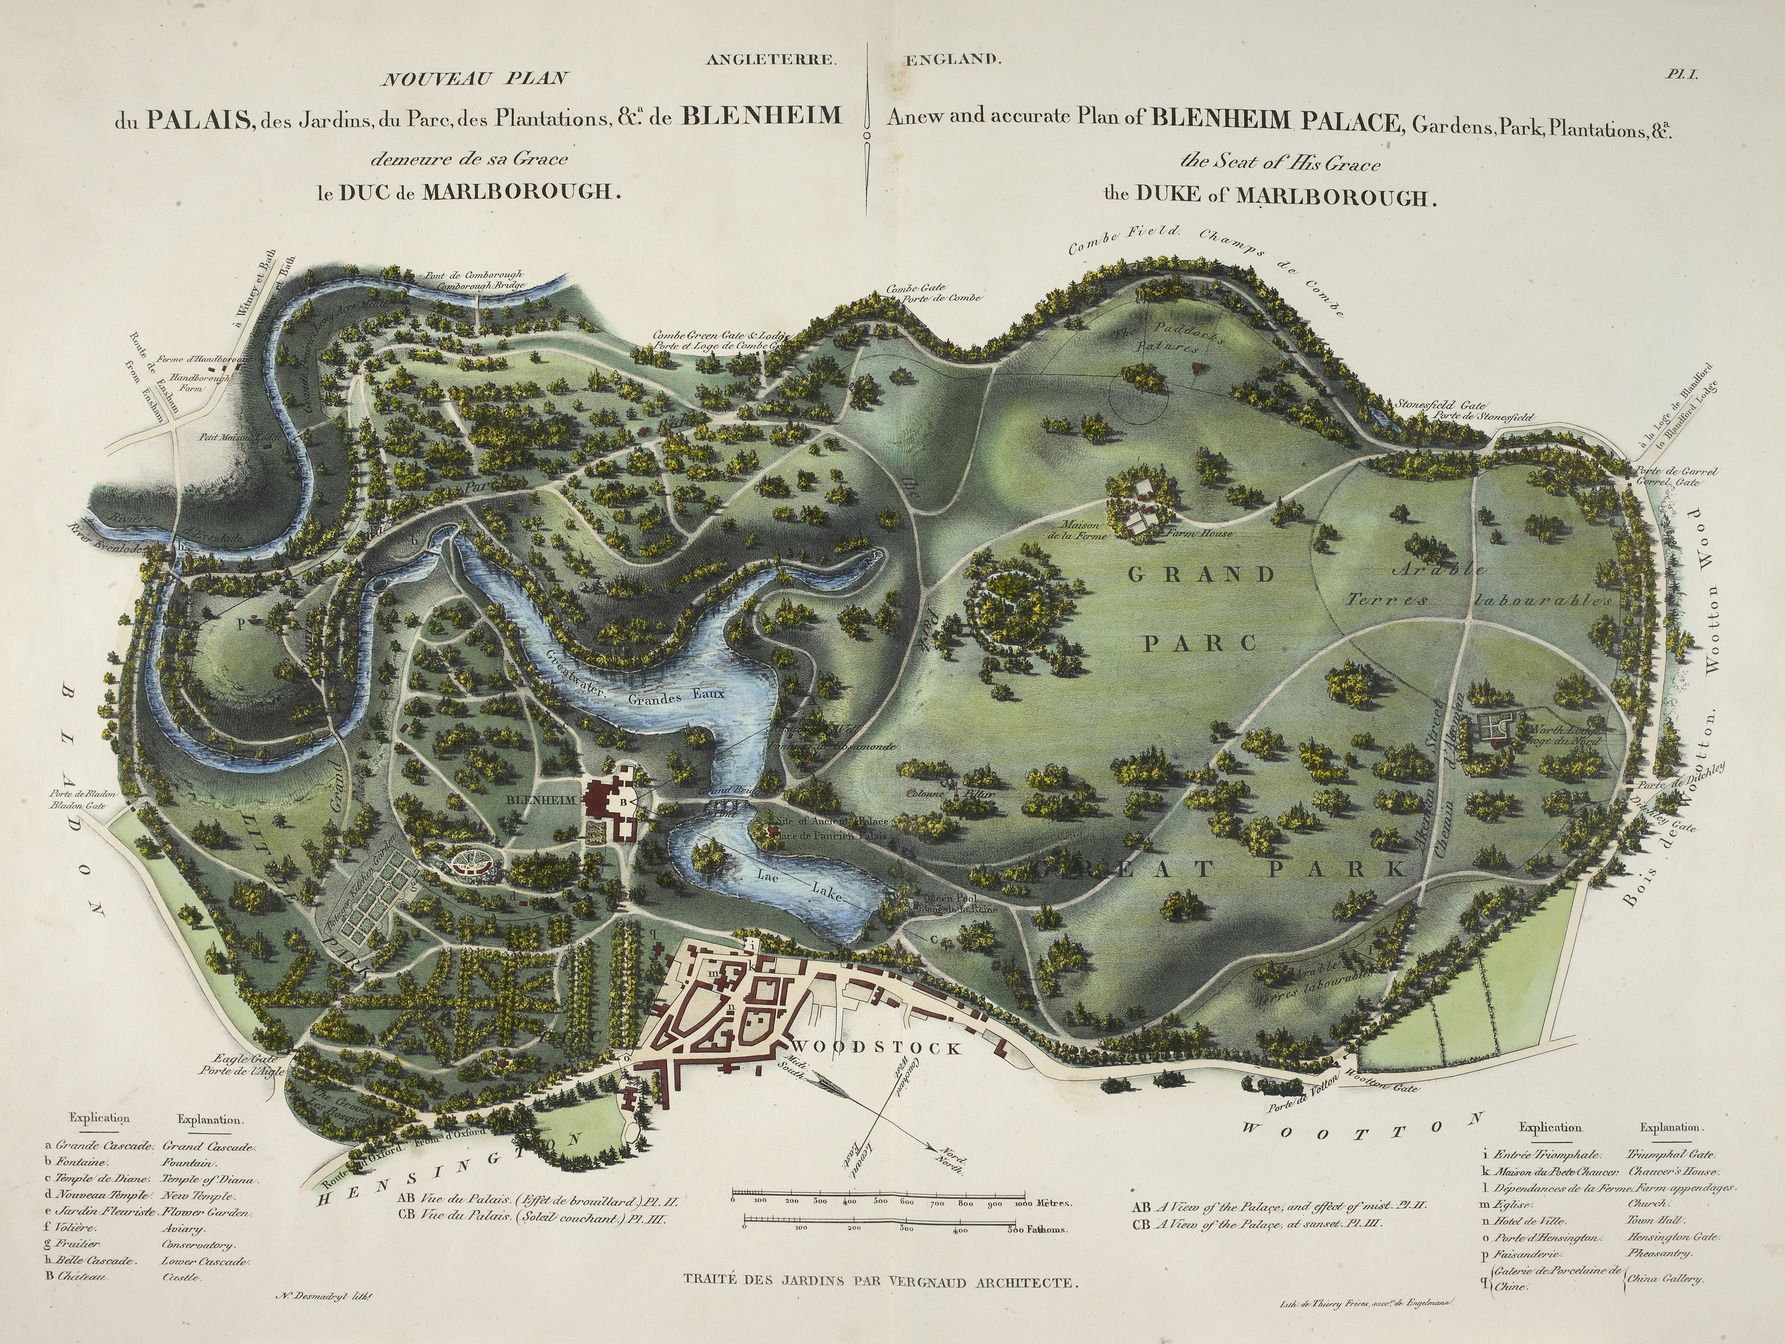 Blenheim Palace Park and gardens in 1835